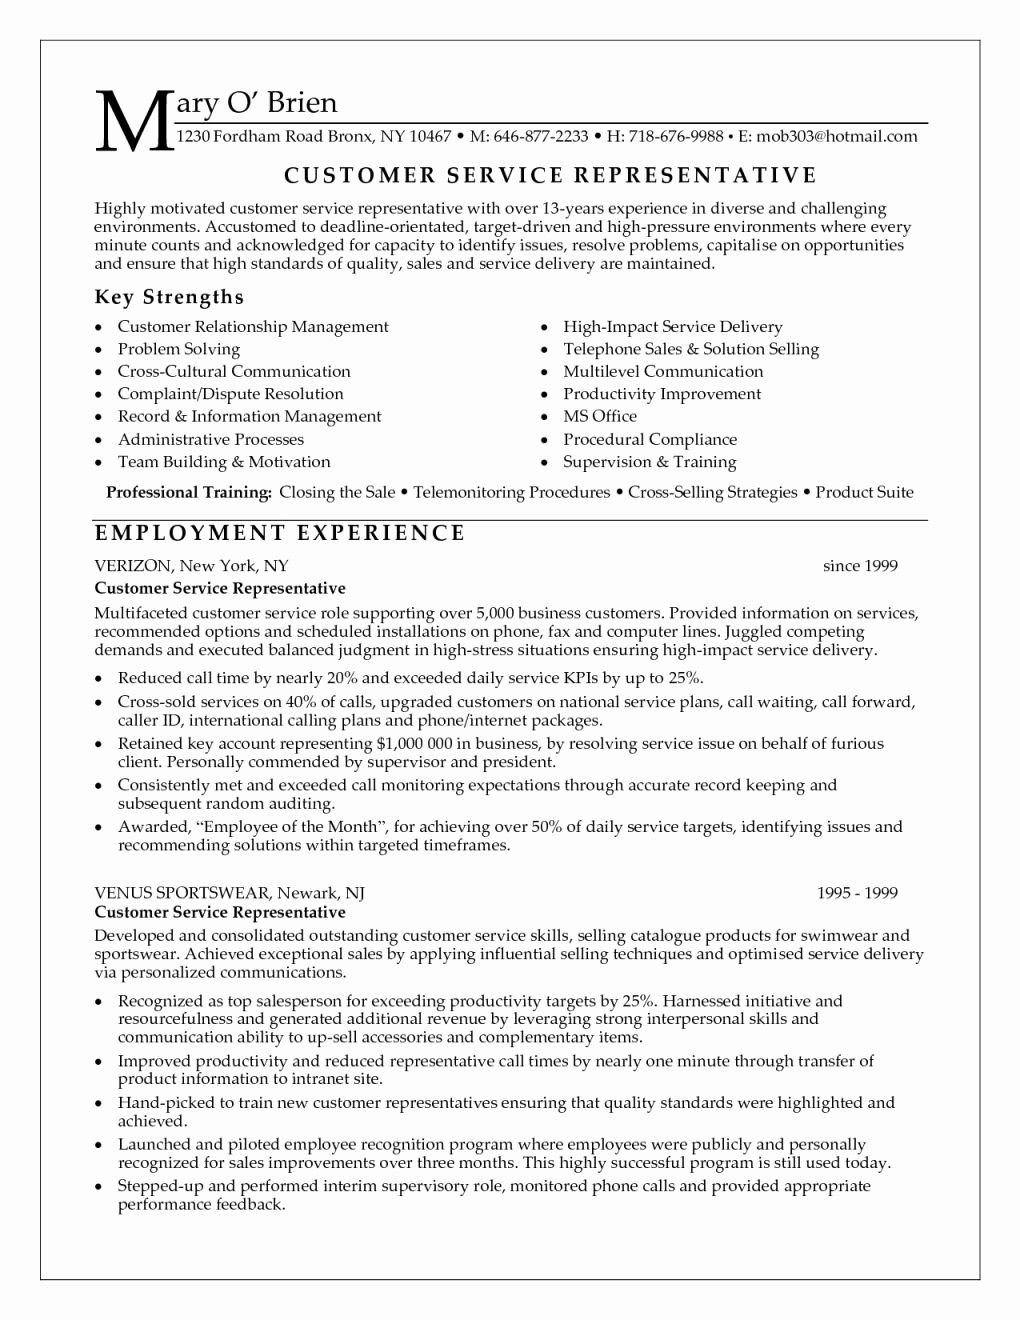 How To List A Degree On A Resume Associate Bachelor S Master S